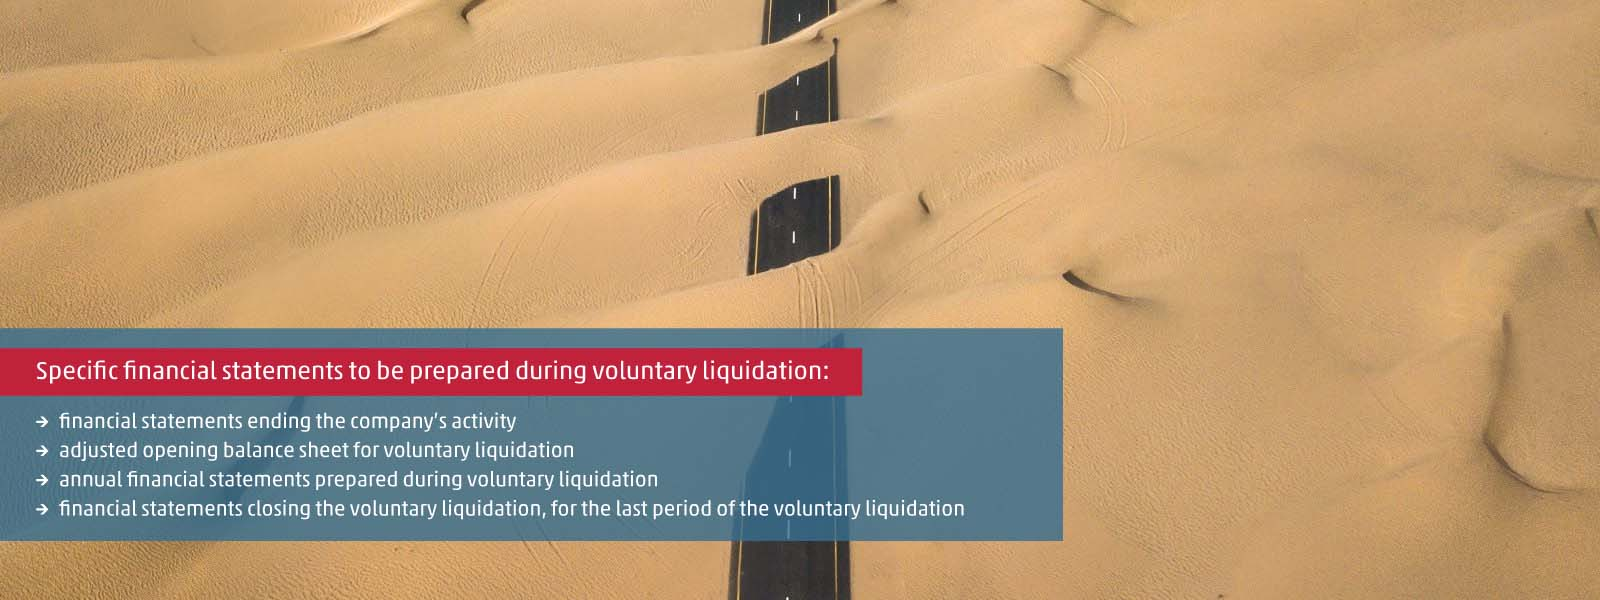 Accounting requirements of financial statements prepared during voluntary liquidation